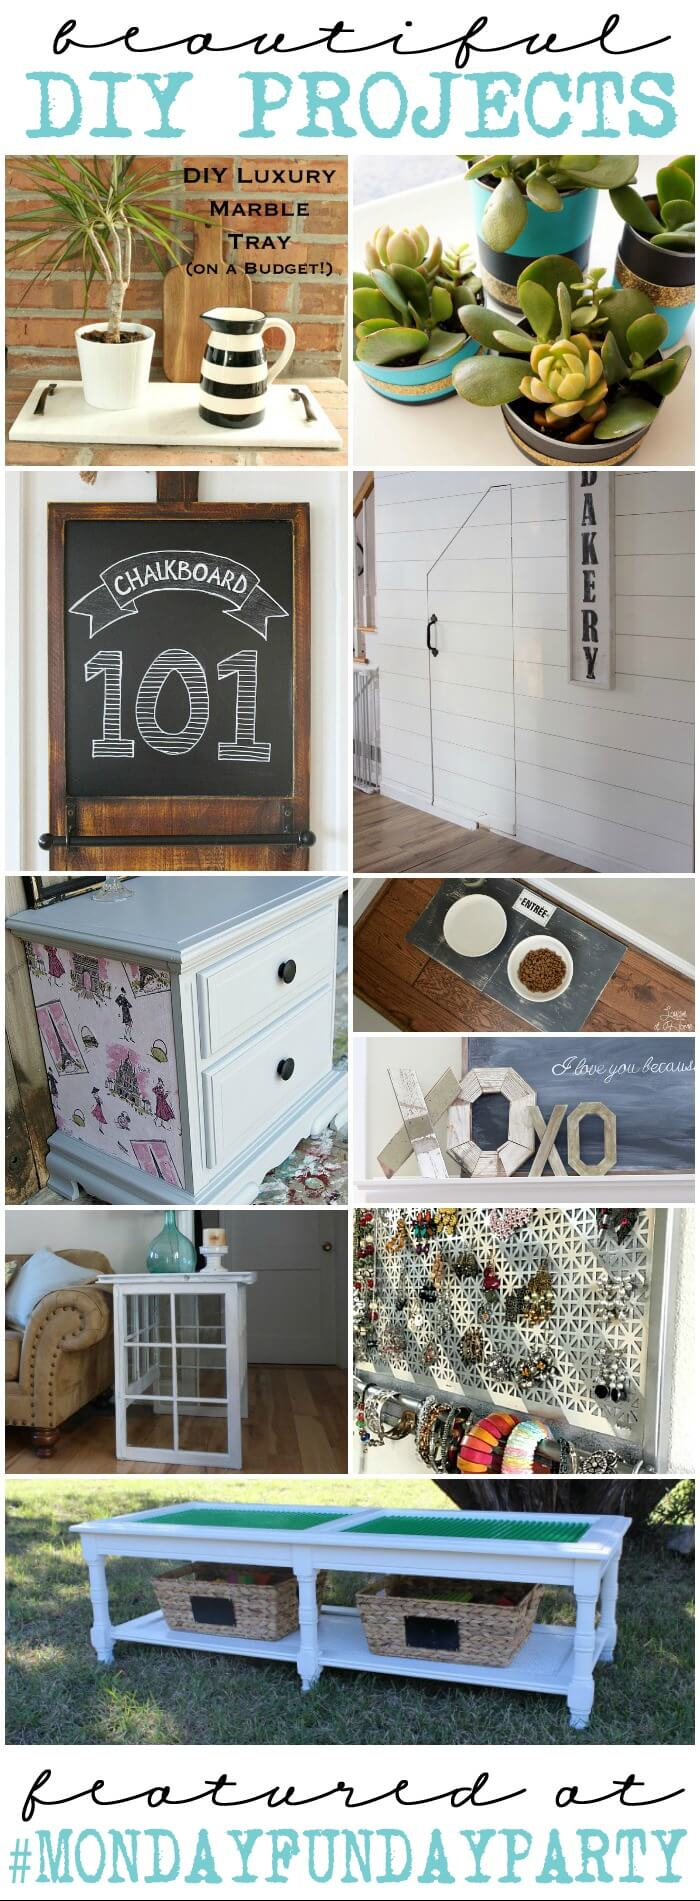 10 Beautiful DIY Projects from Monday Funday Link Party at www.thatswhatchesaid.com